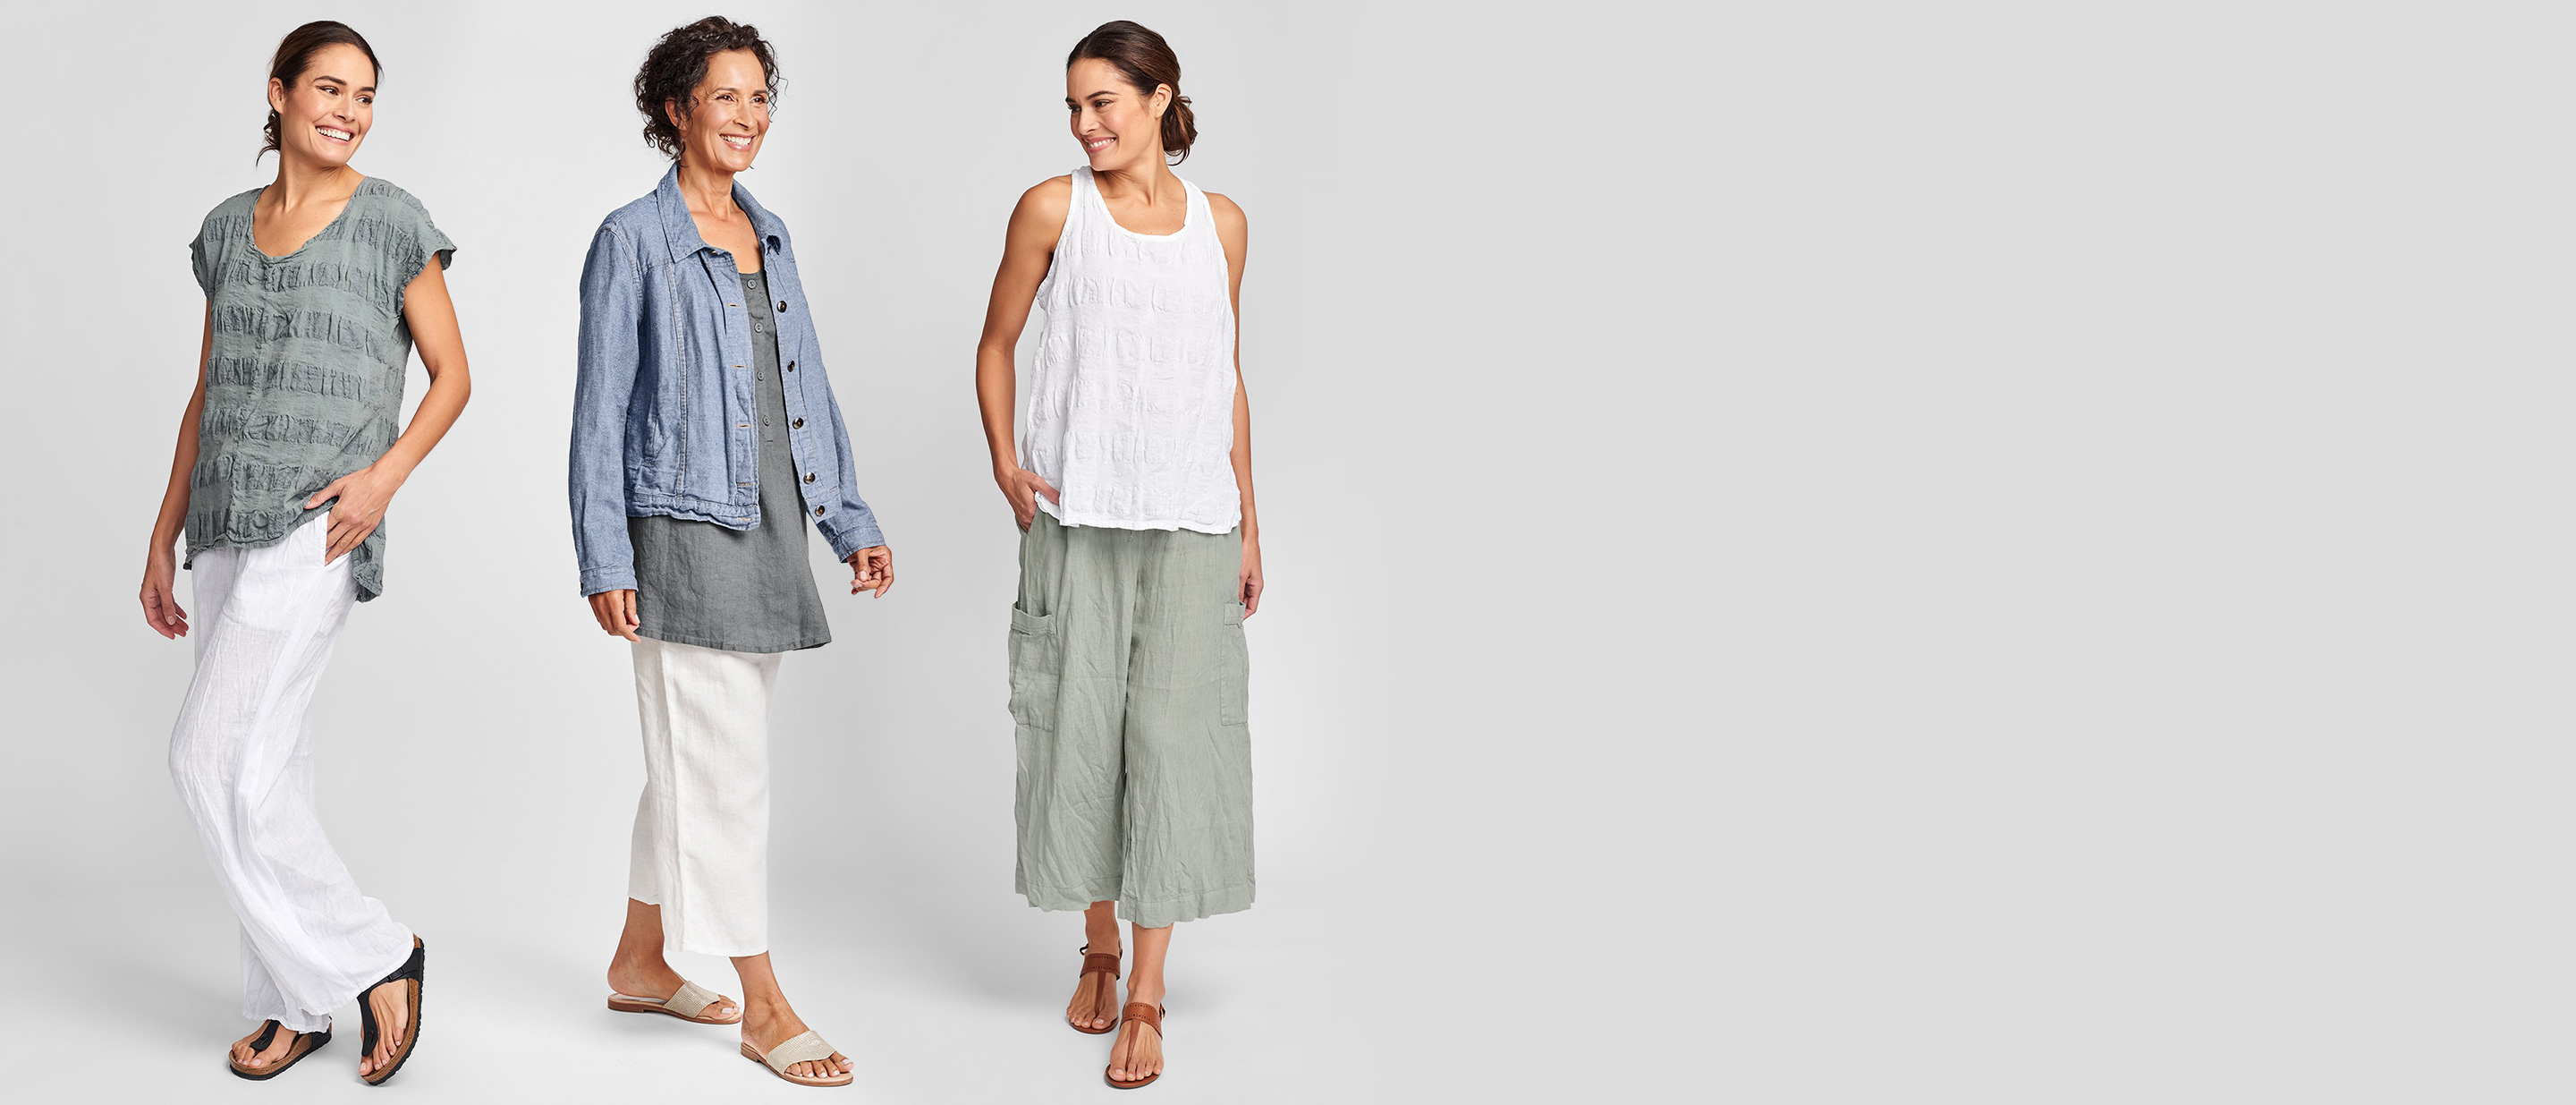 flax women's linen clothing for spring 2021